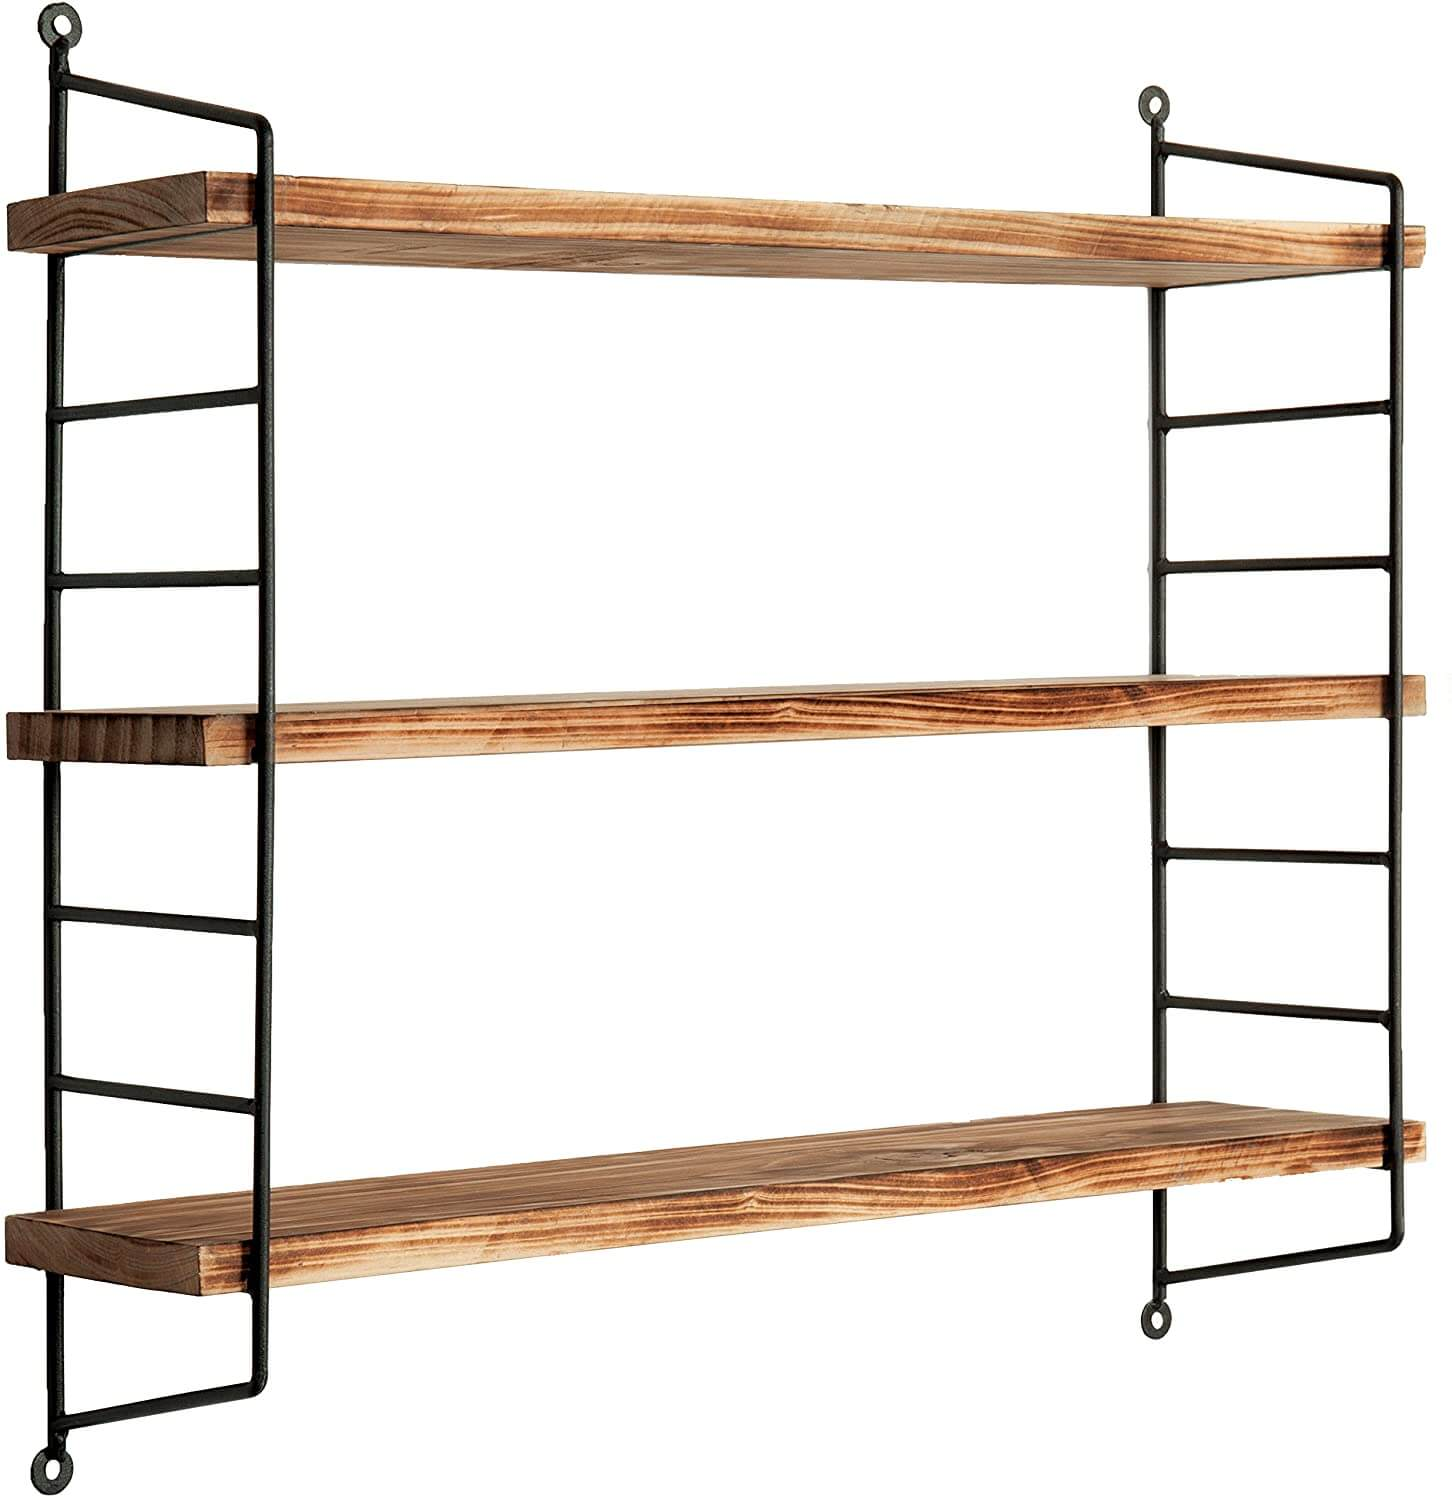 23-Inch Modern Industrial Metal and Torched Wood Adjustable Wall Mounted 3-Tier Display